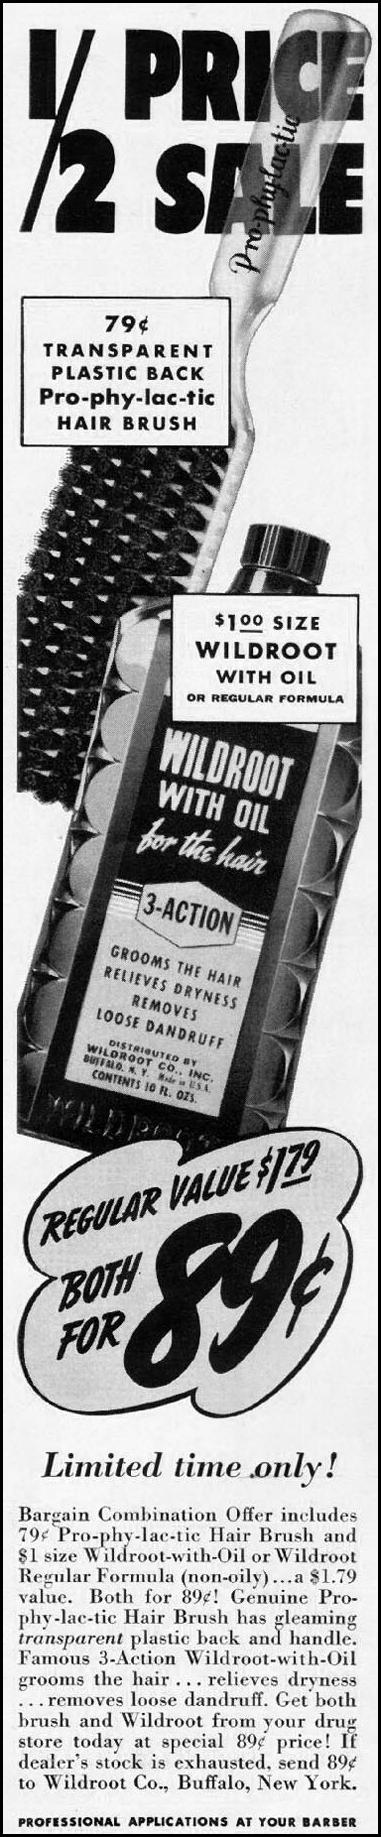 WLIDROOT HAIR TONIC LIFE 09/29/1941 p. 100